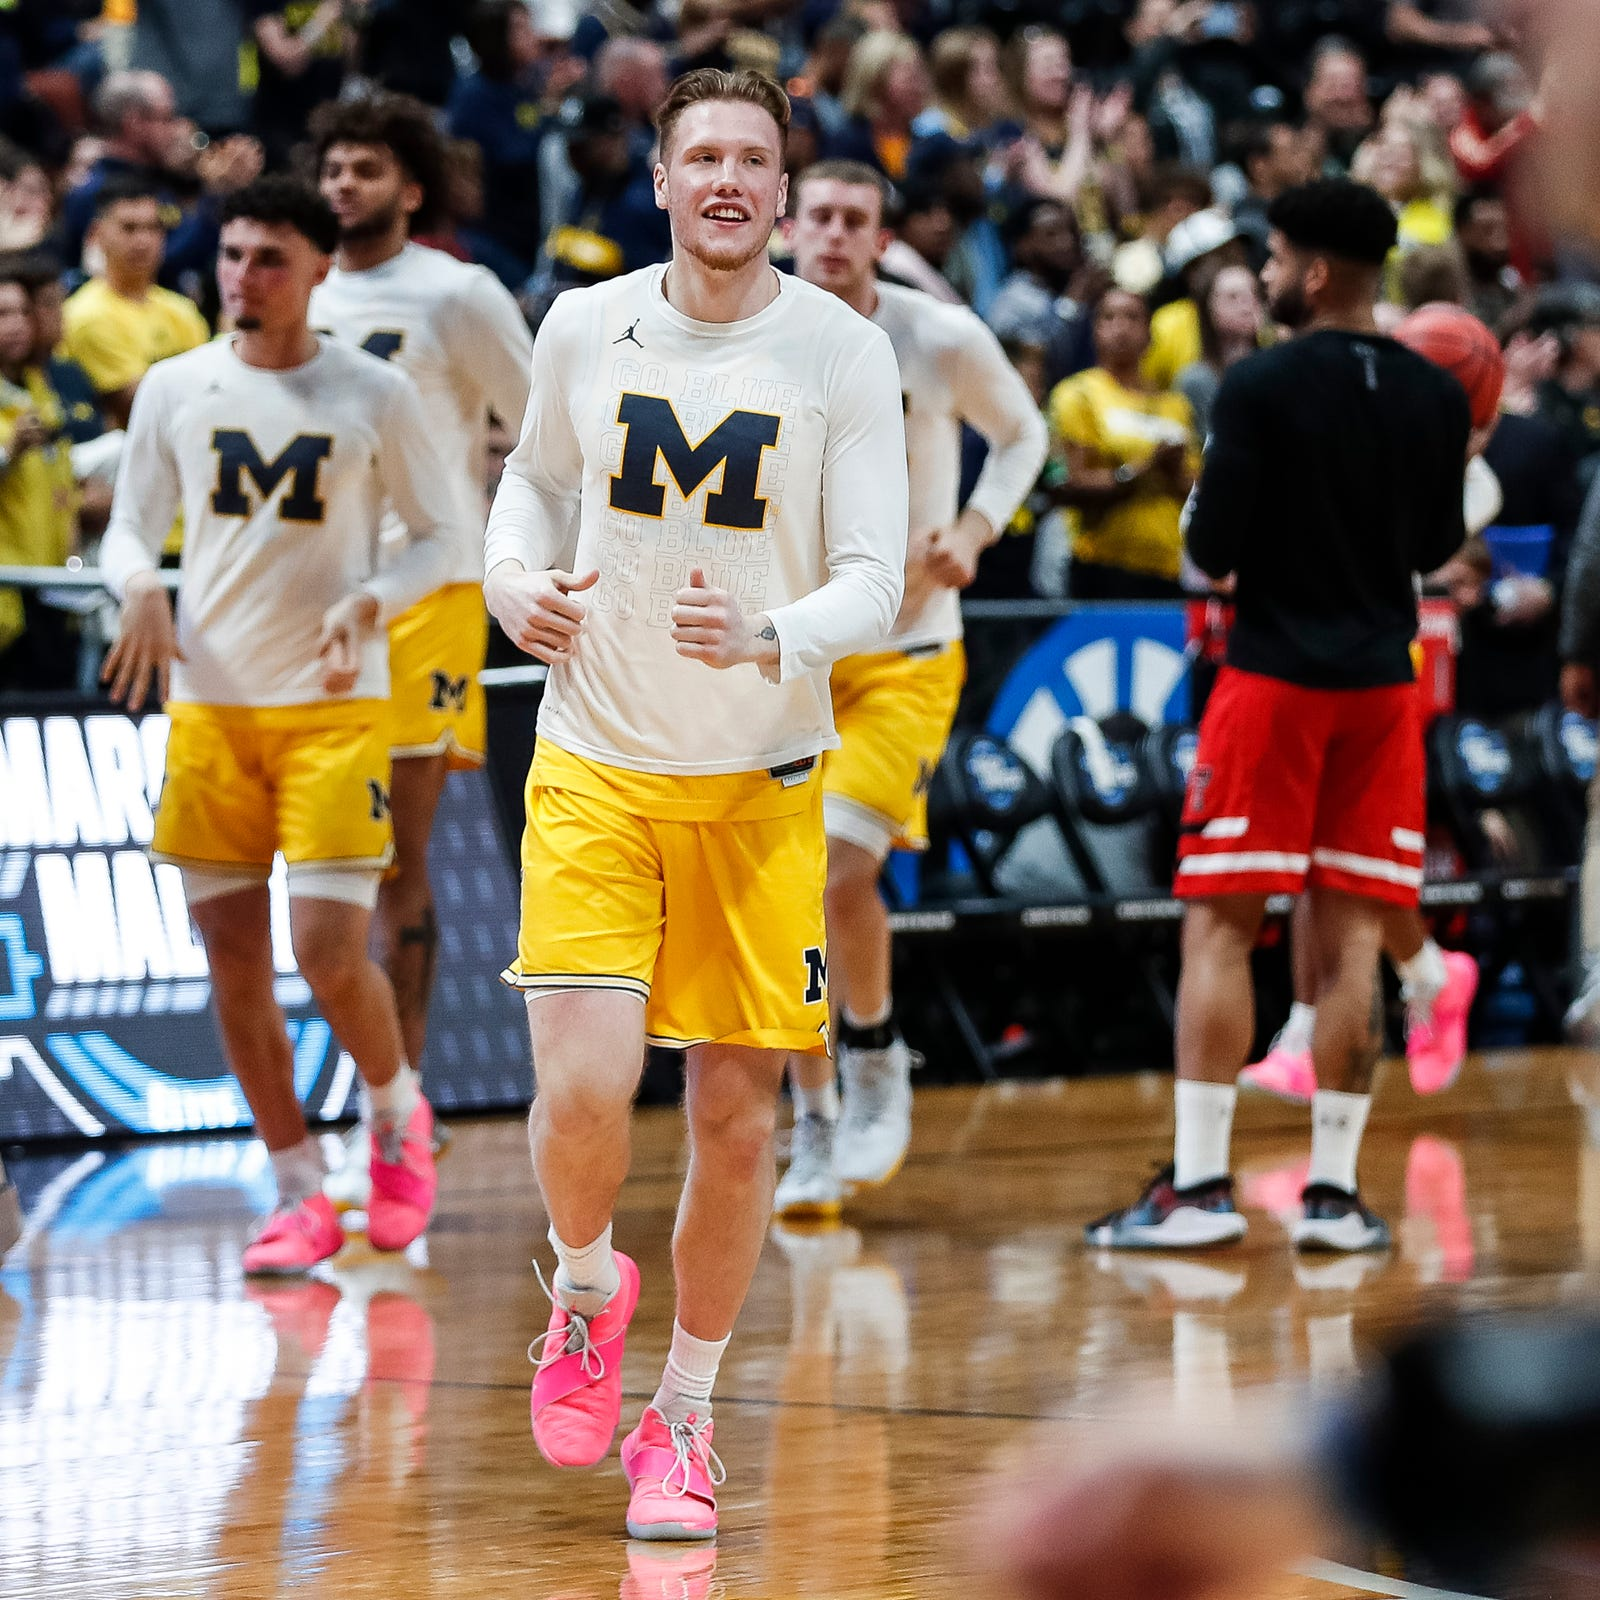 Michigan basketball underclassmen may face NBA draft decisions